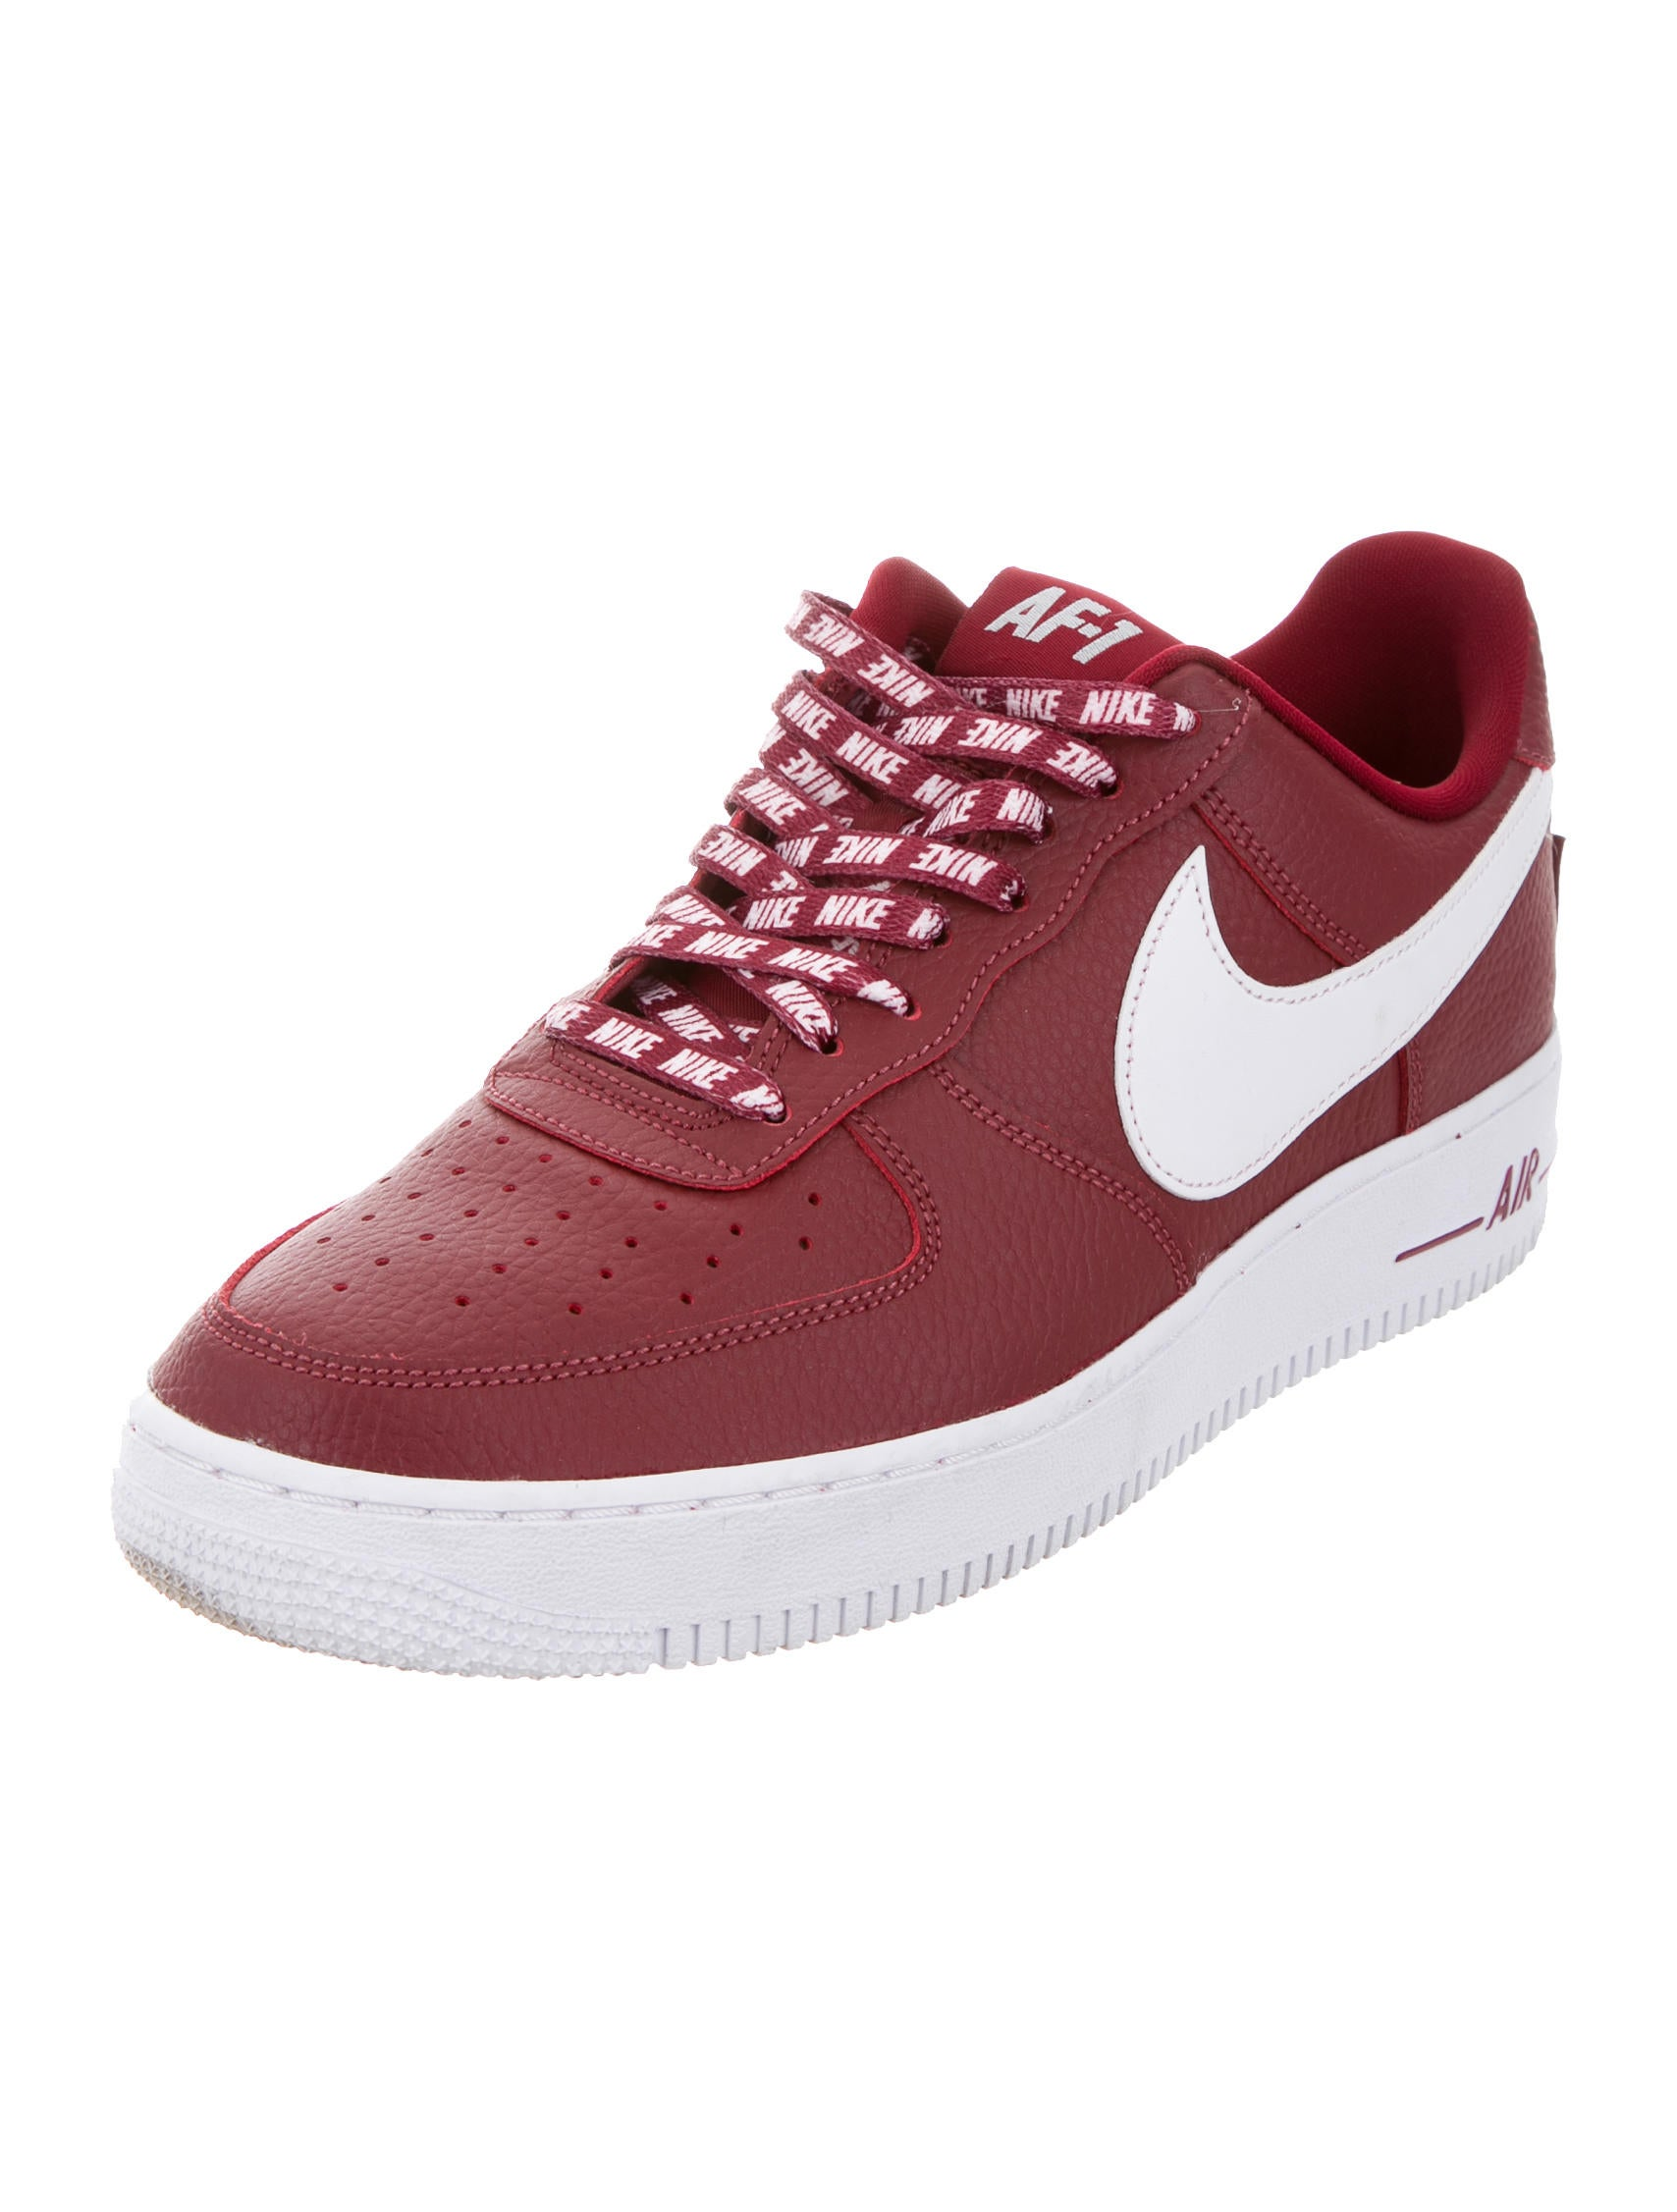 Real Air Force One Shoes